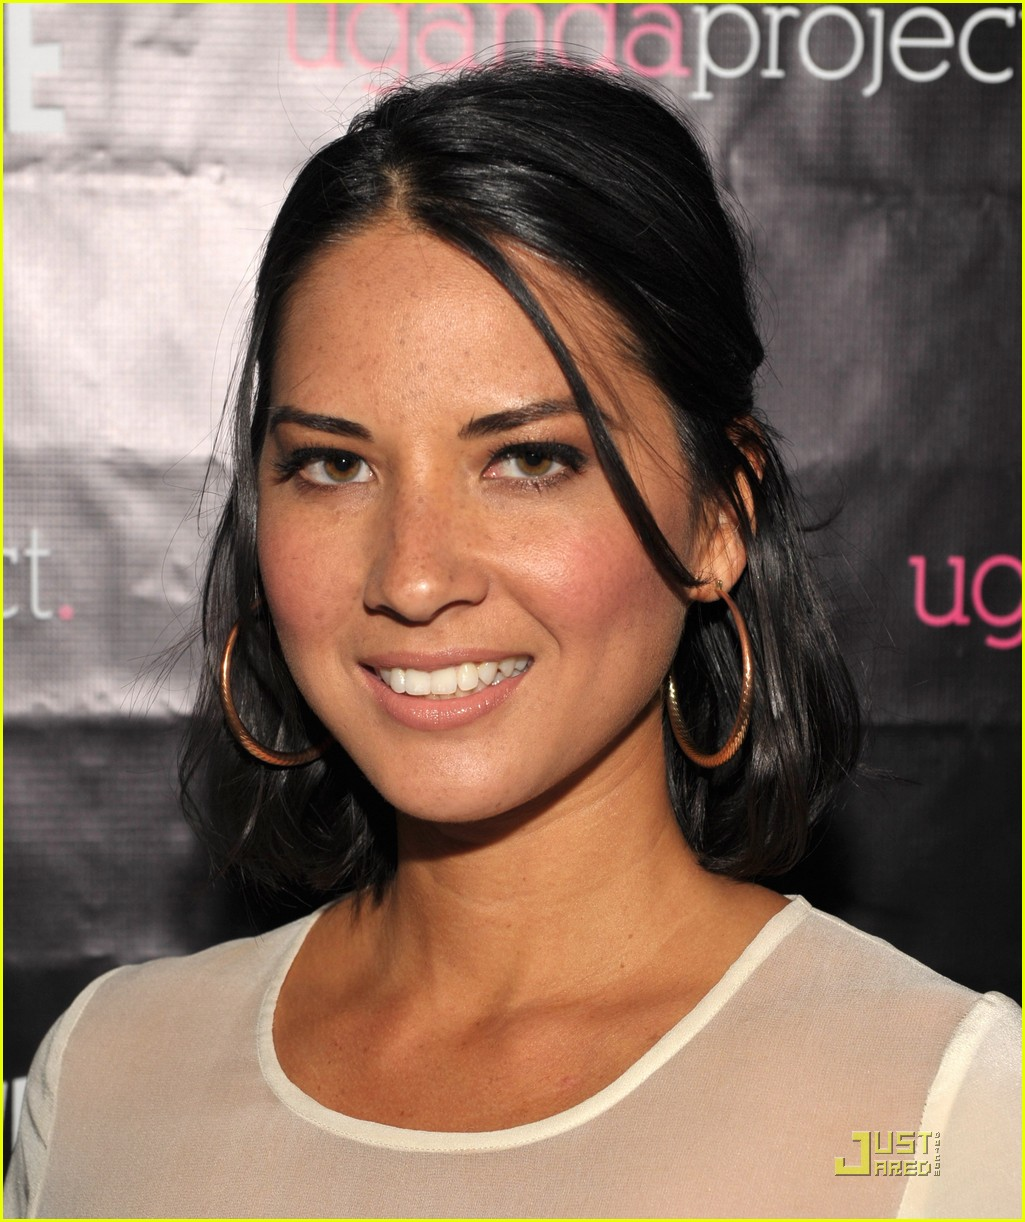 olivia munn uganda project fundrasier with jason ritter 042544131